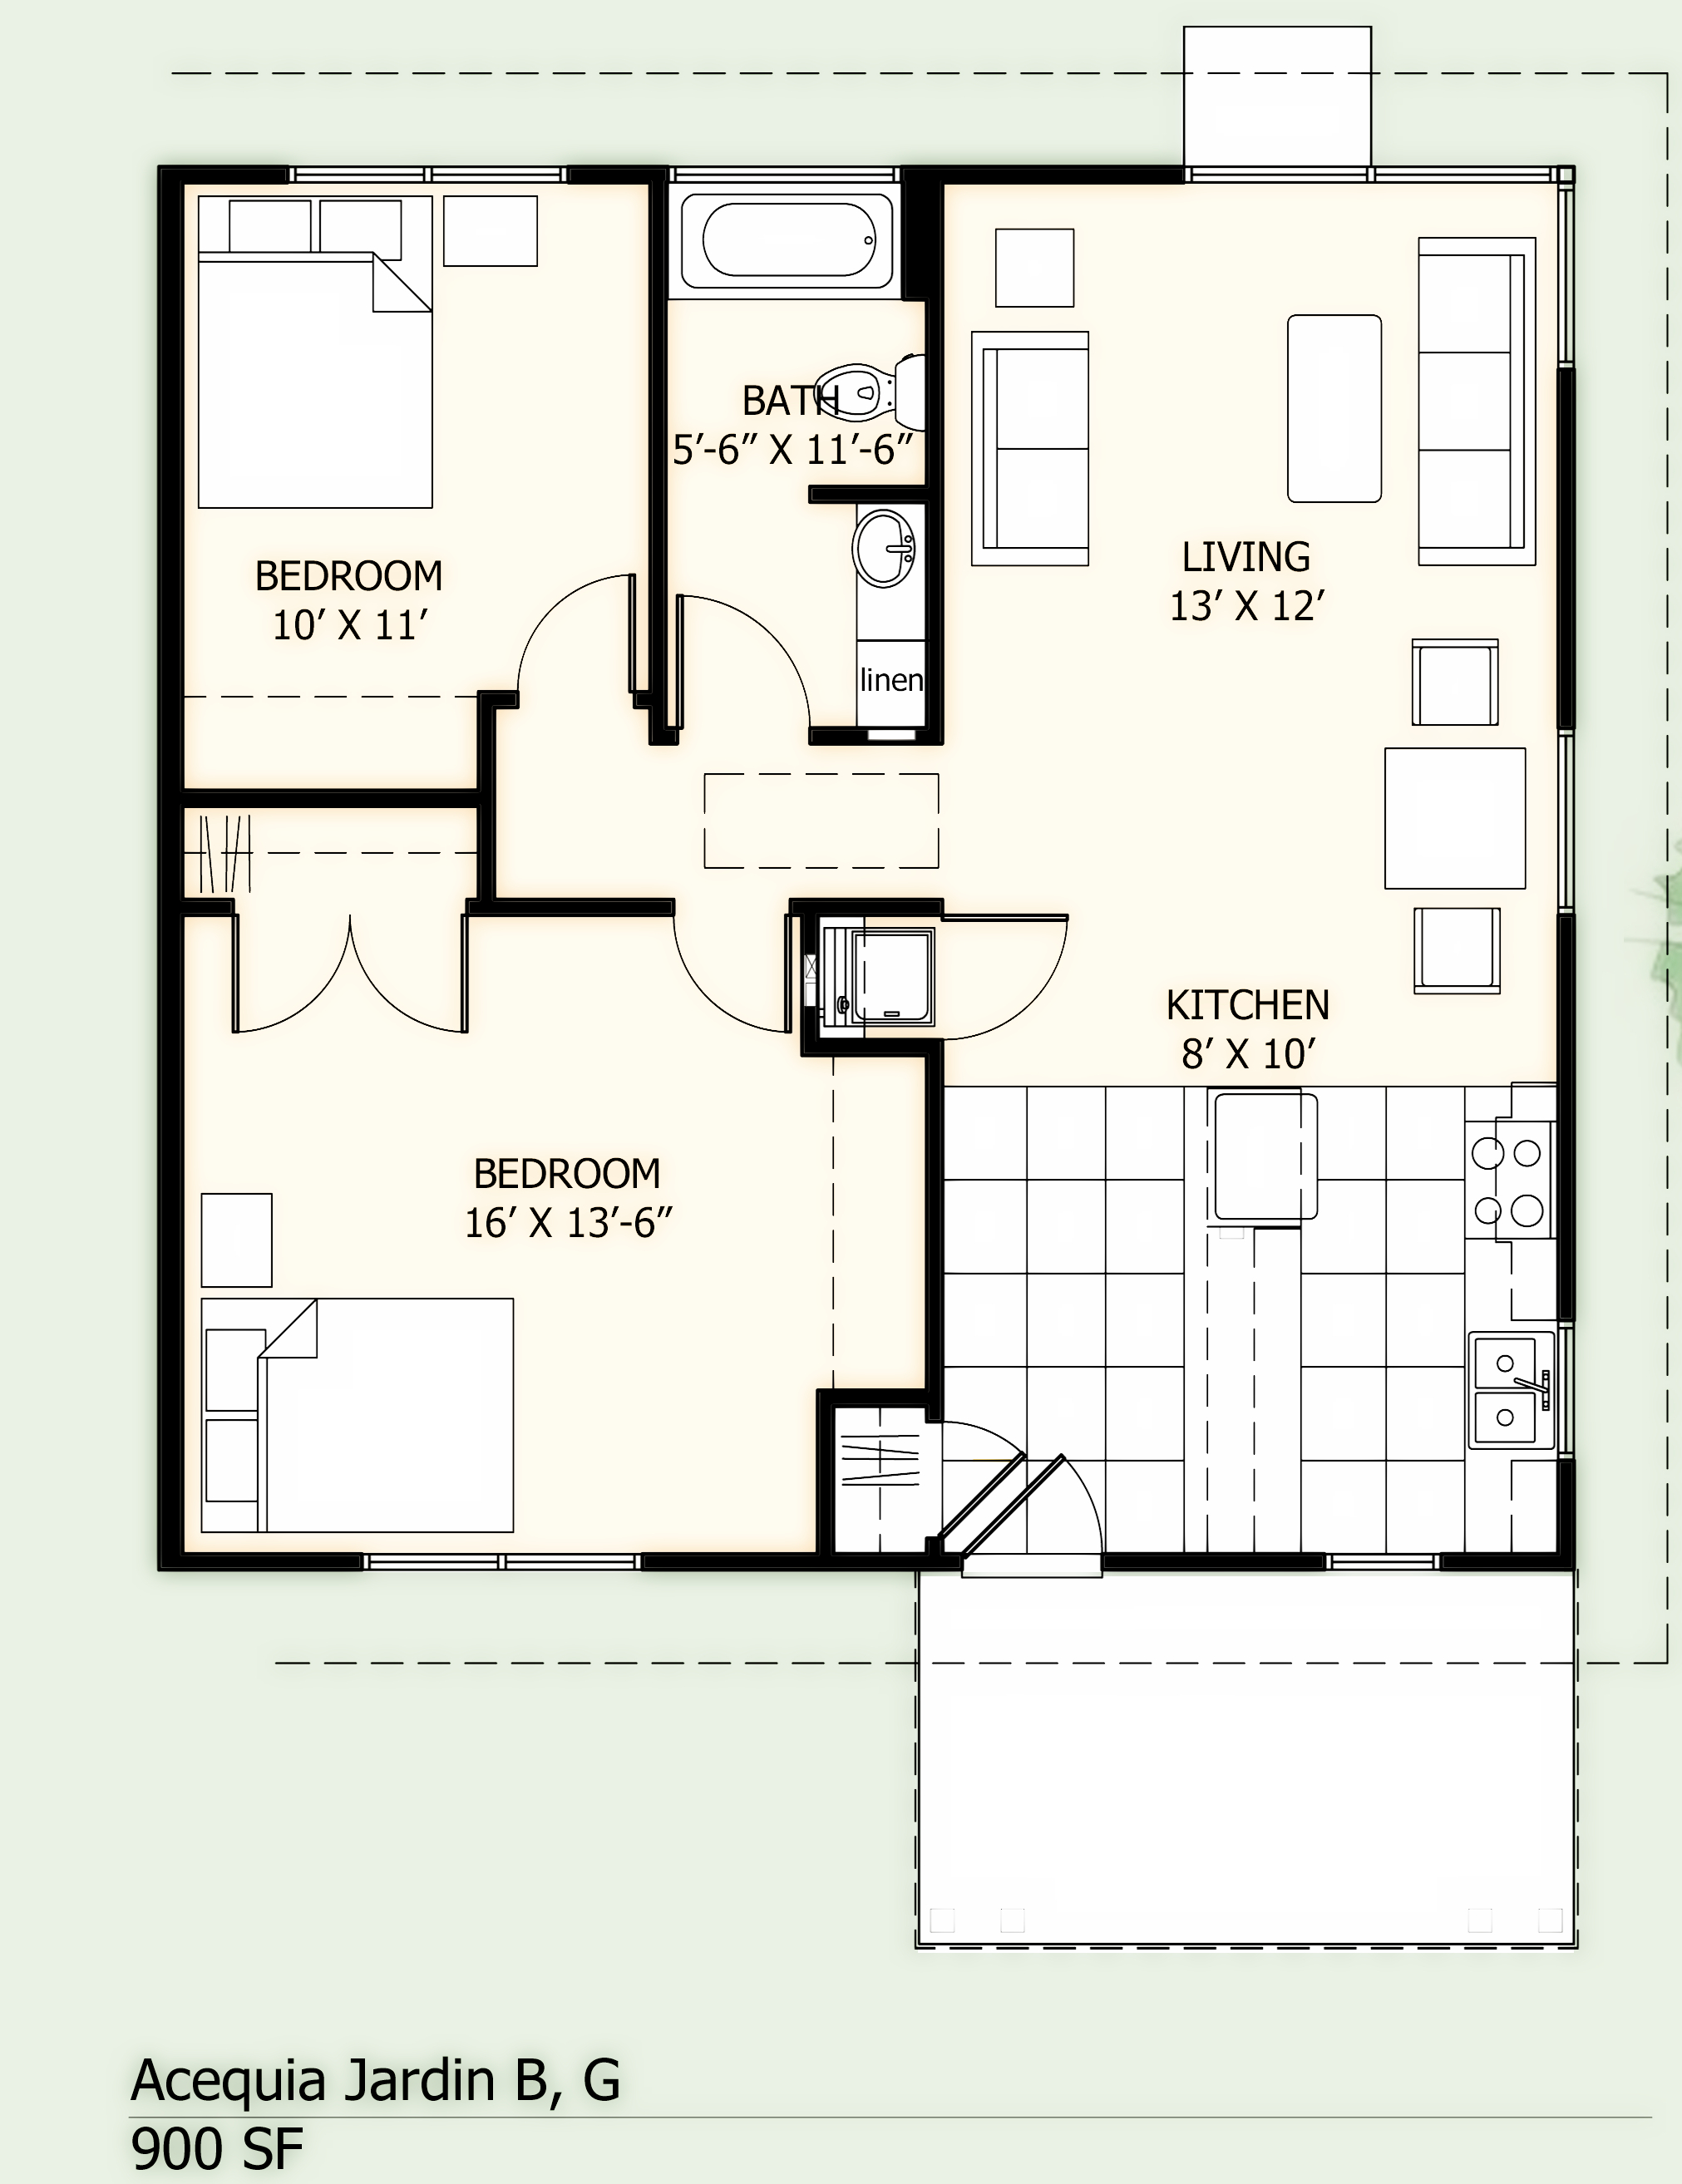 900 sq ft home pictures.